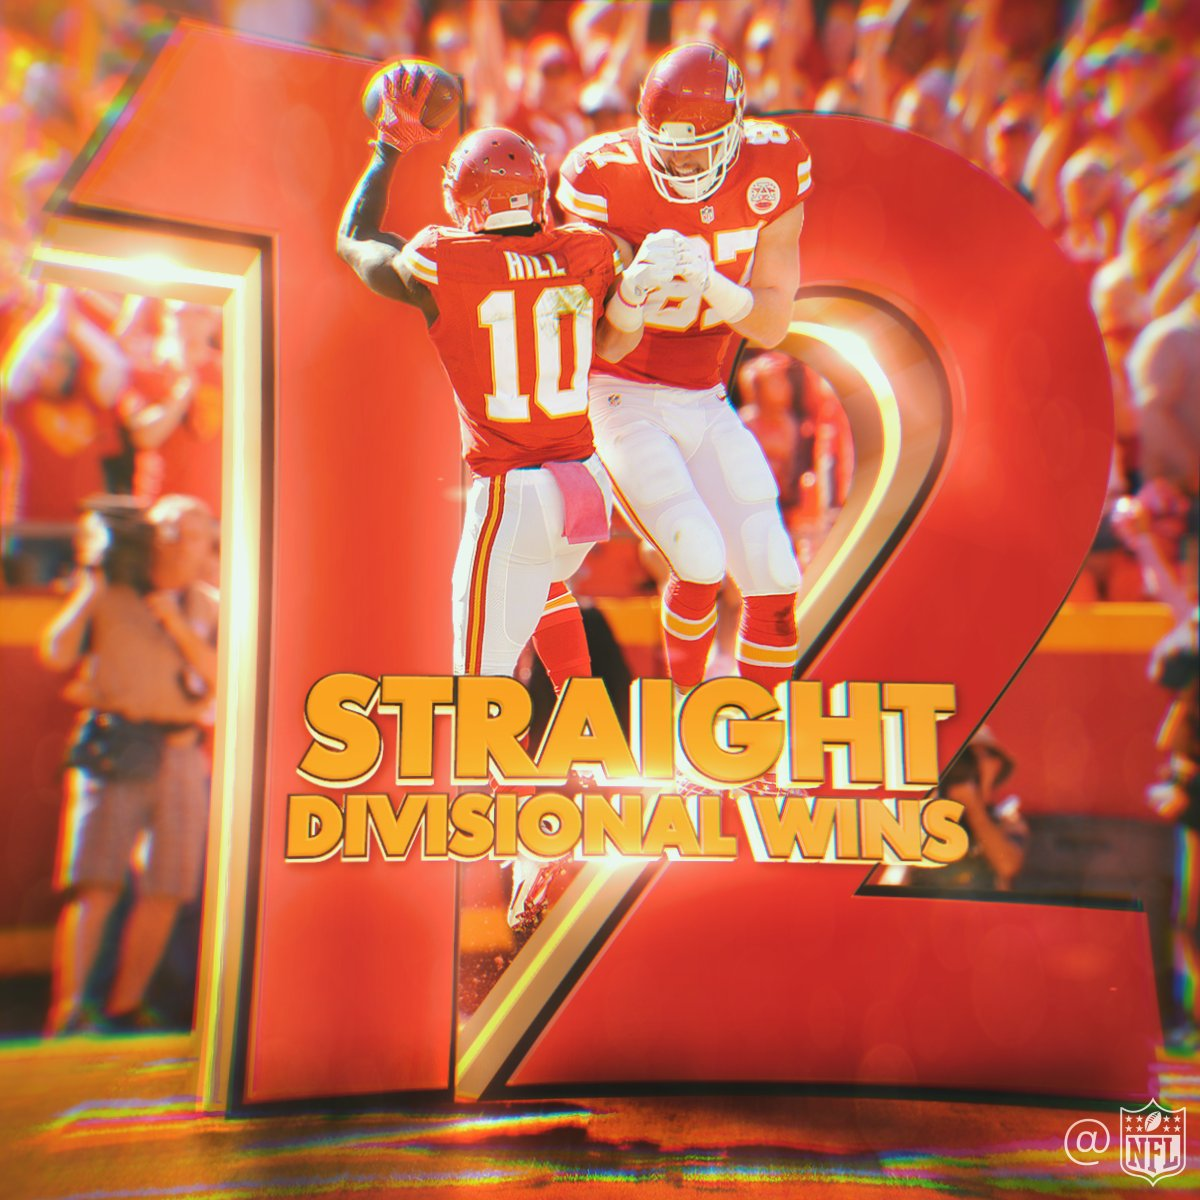 The @Chiefs haven't lost to an AFC West opponent since Week 2... of 2015! �� https://t.co/bFjENS3fpN